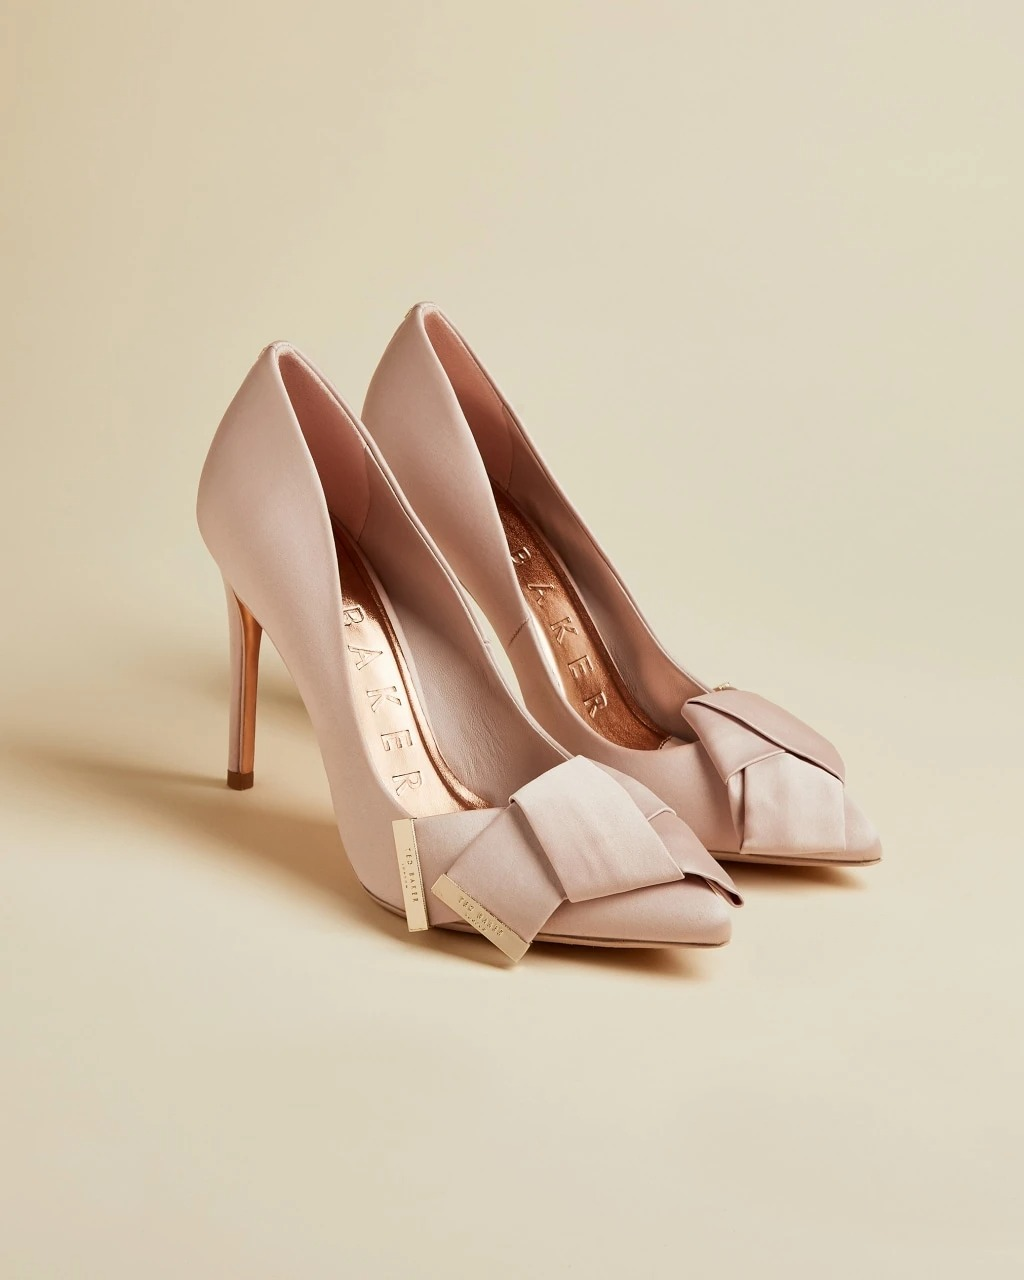 satin pink bow stiletto wedding heels by Ted Baker